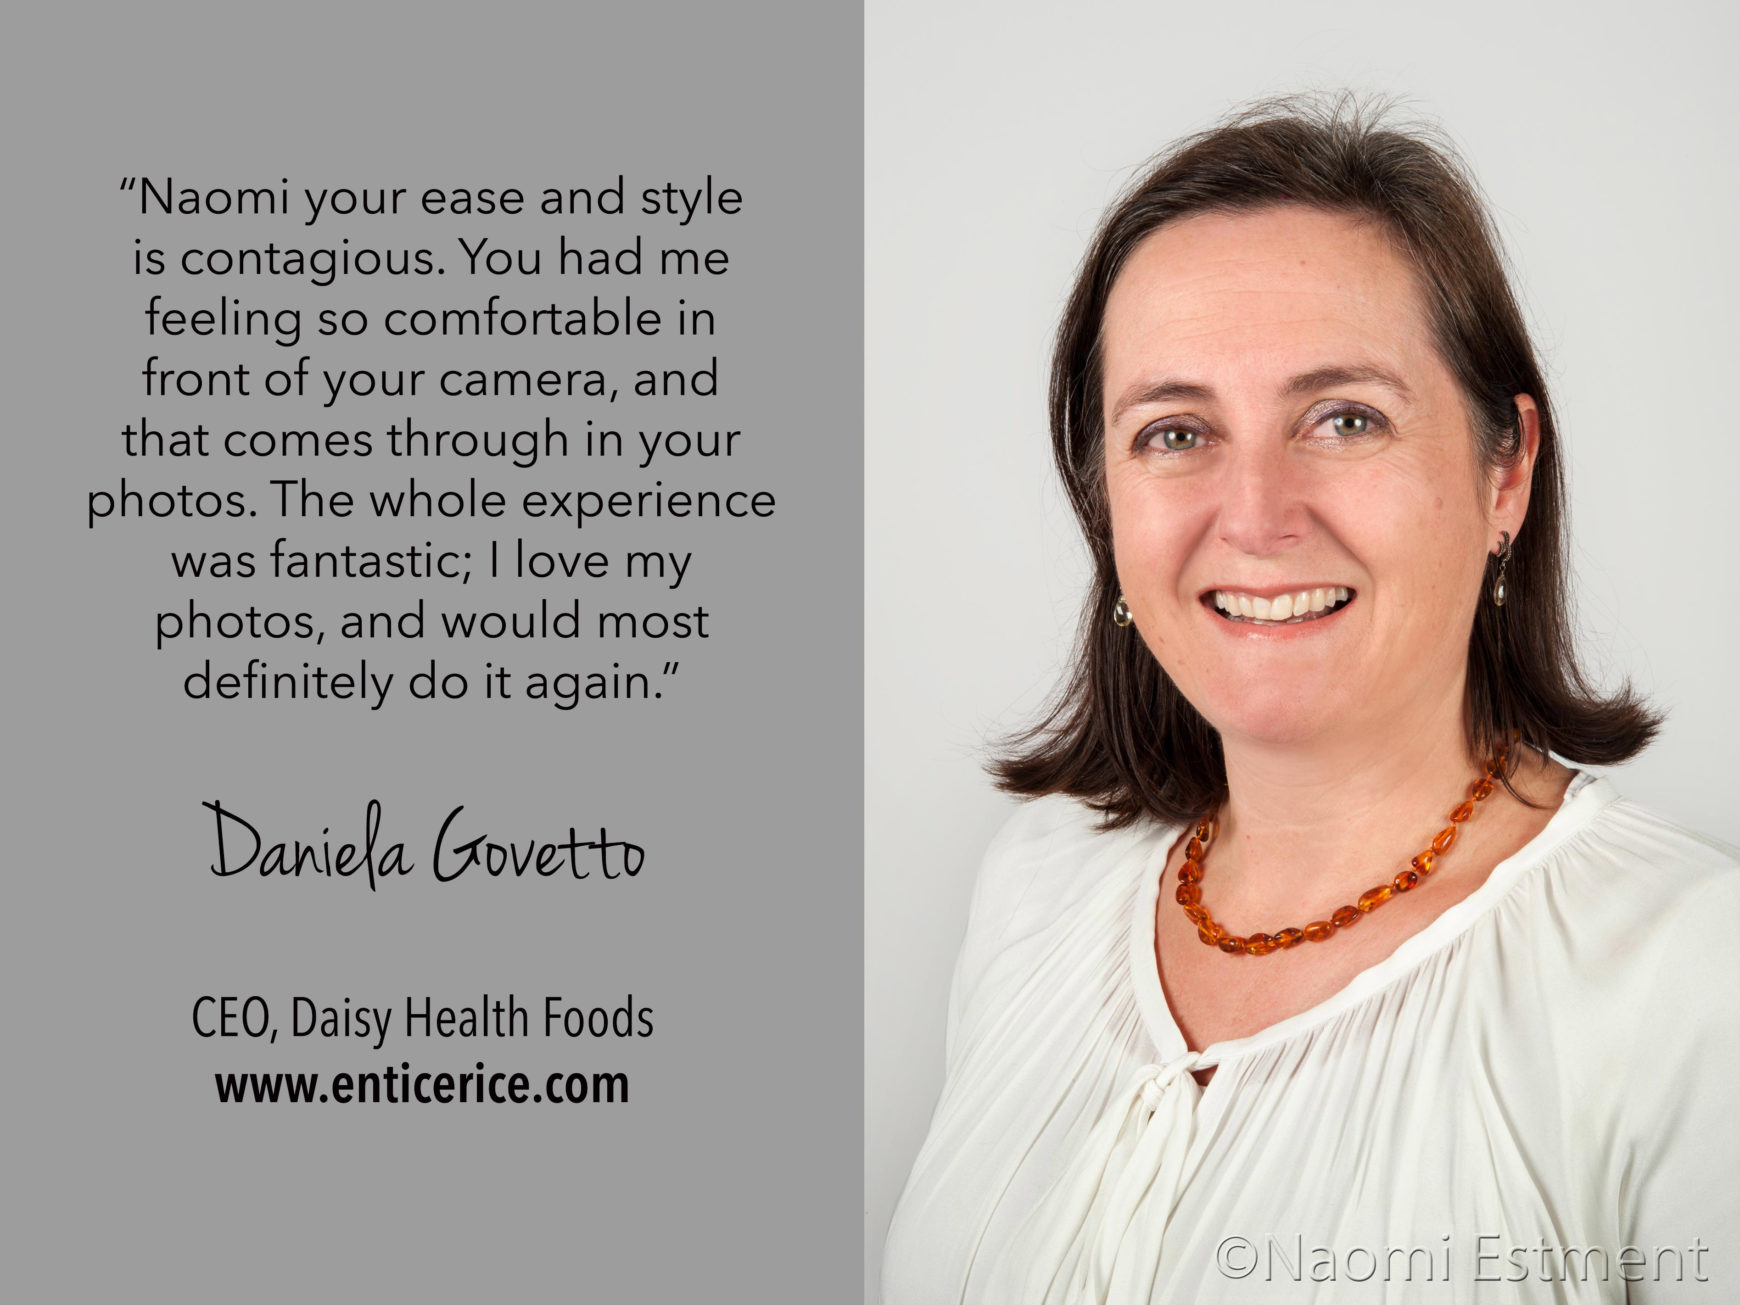 Daniela Govetto Testimonial for Naomi Estment